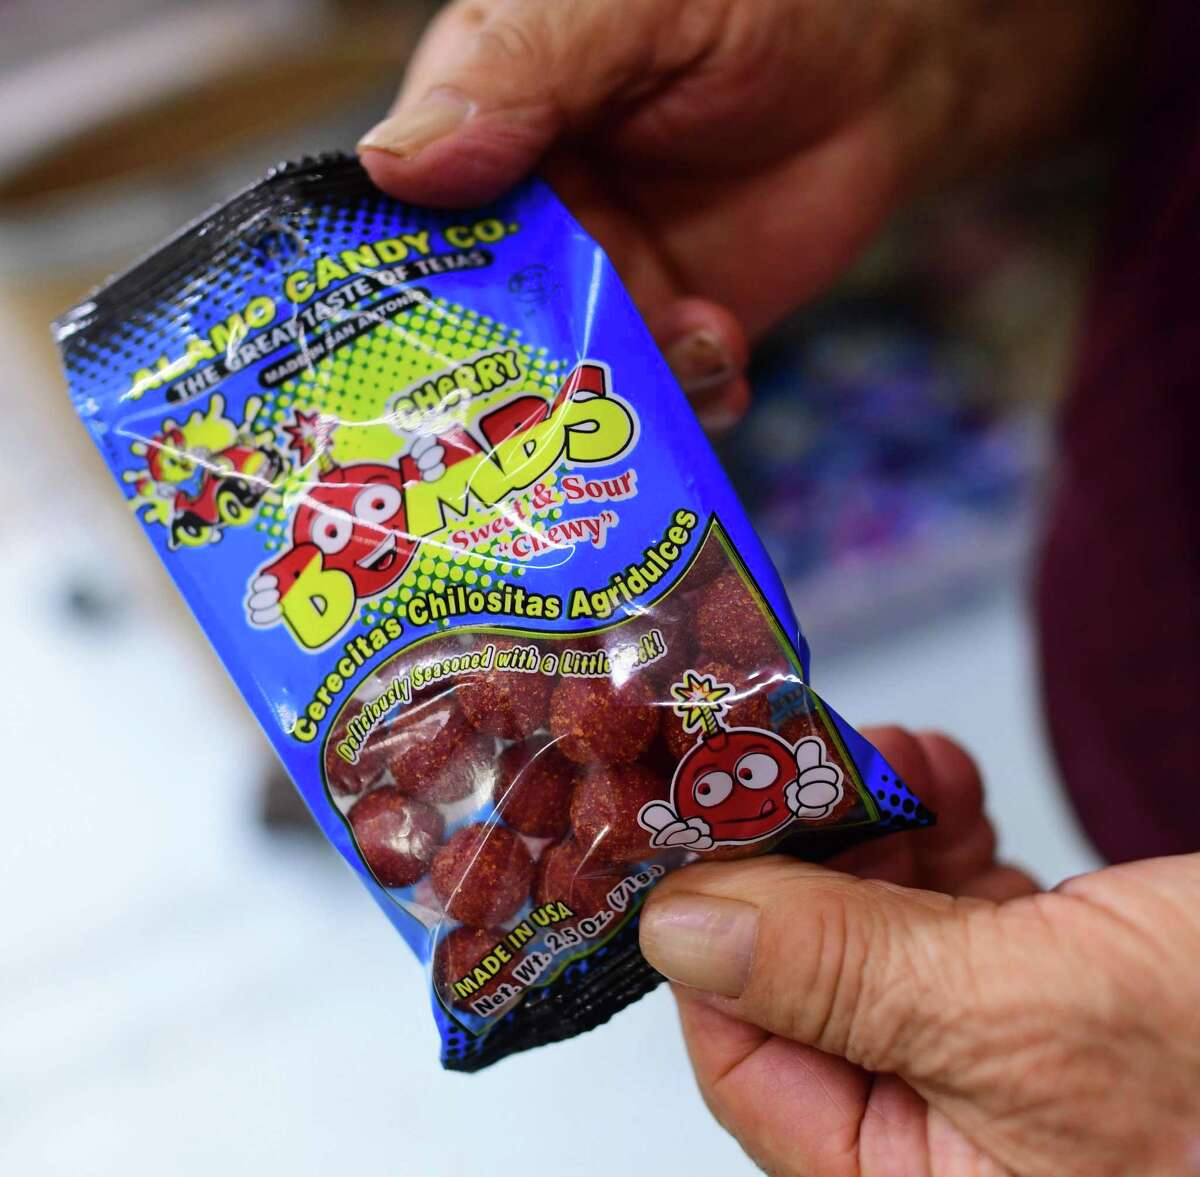 Cherry Bombs are among the more popular items made by Alamo Candy Co.